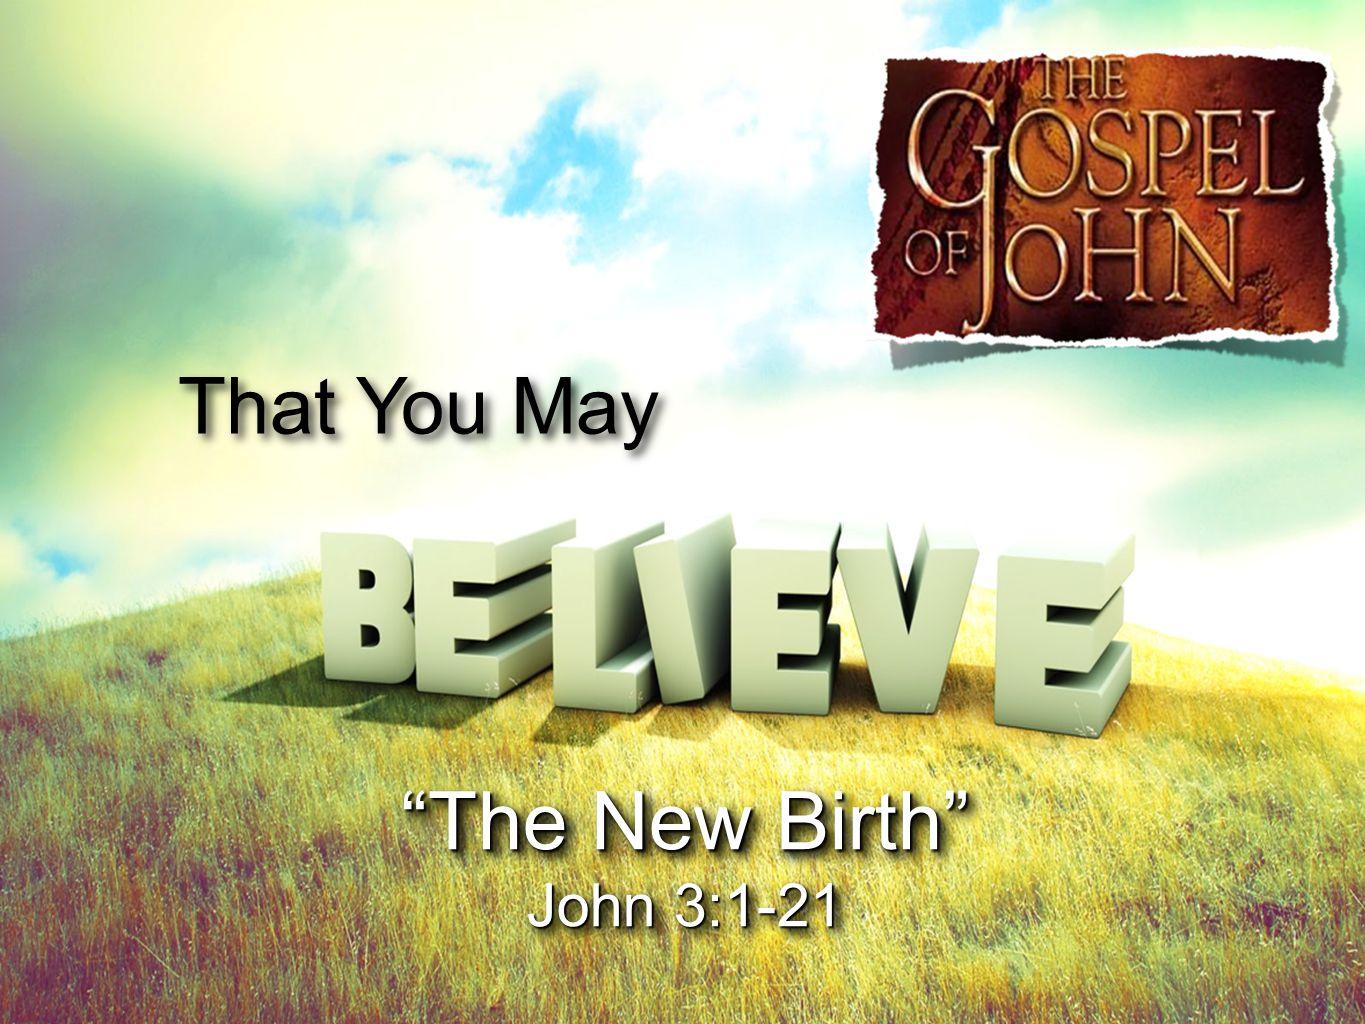 The New Birth, You Must Be Born Again John 20:30-31 (NKJV) 30 And truly Jesus did many other signs in the presence of His disciples, which are not written in this book; 31 but these are written that you may believe that Jesus is the Christ, the Son of God, and that believing you may have life in His name.